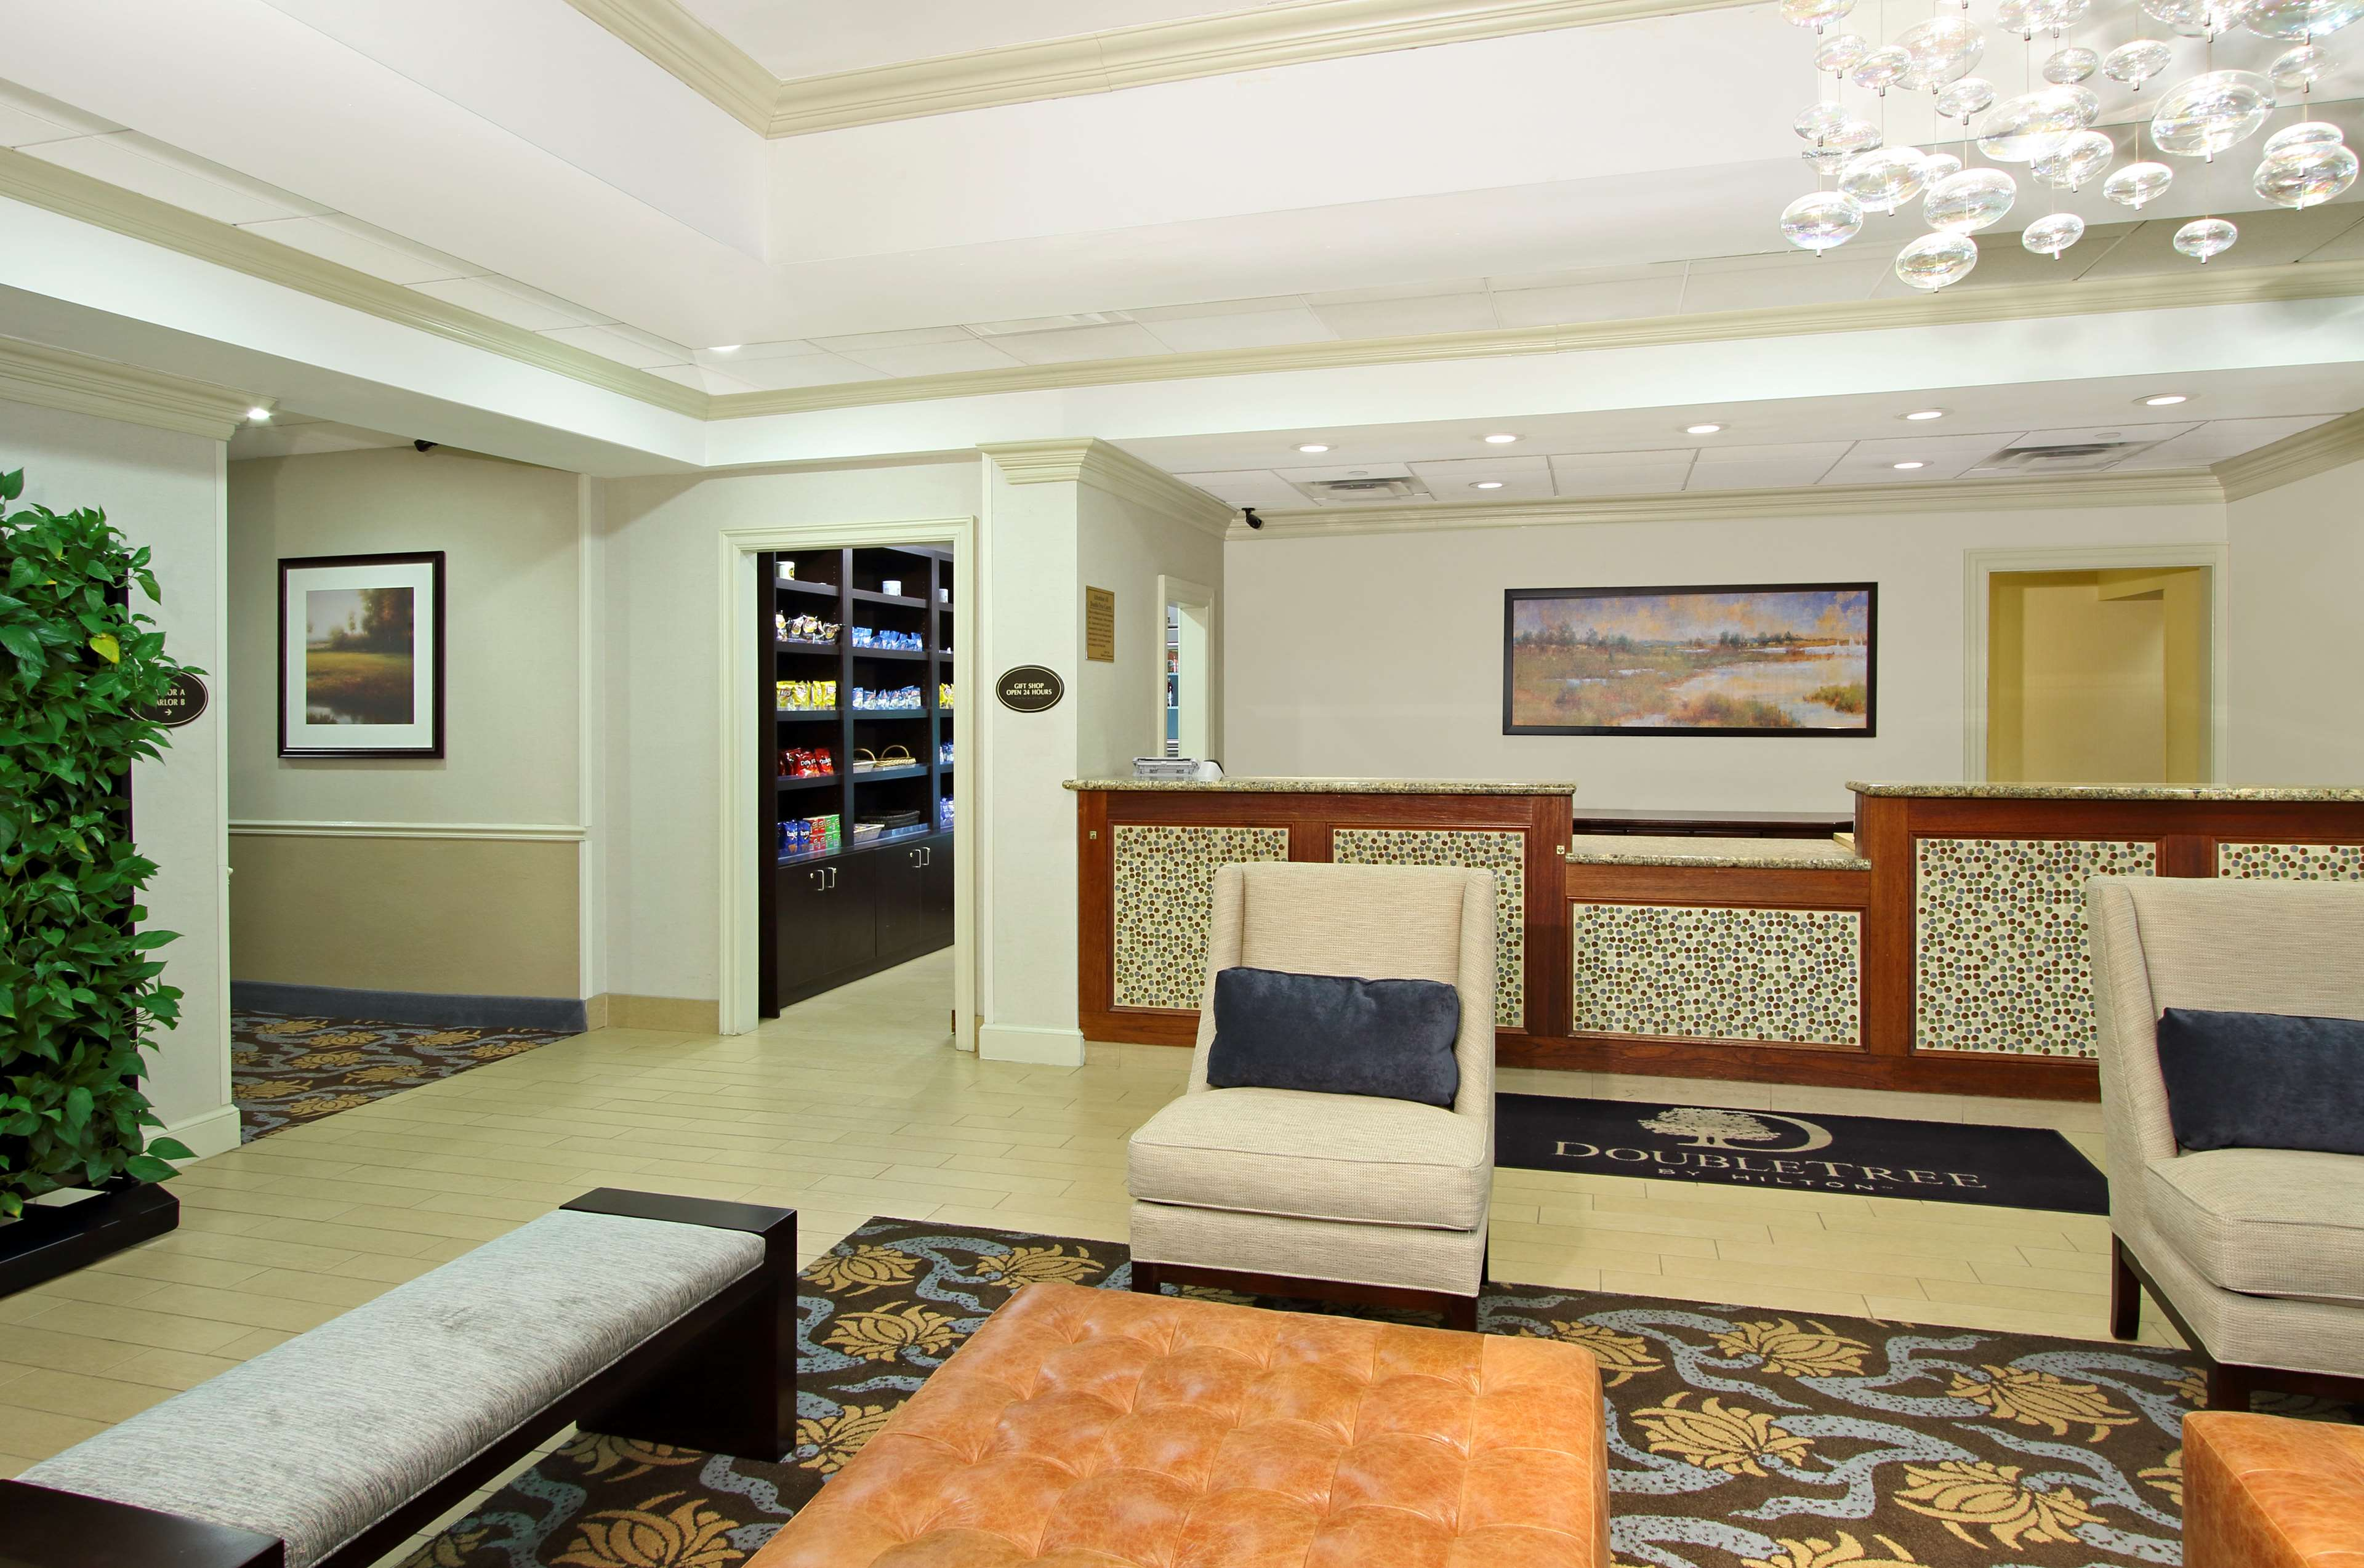 DoubleTree by Hilton Hotel Mahwah image 3